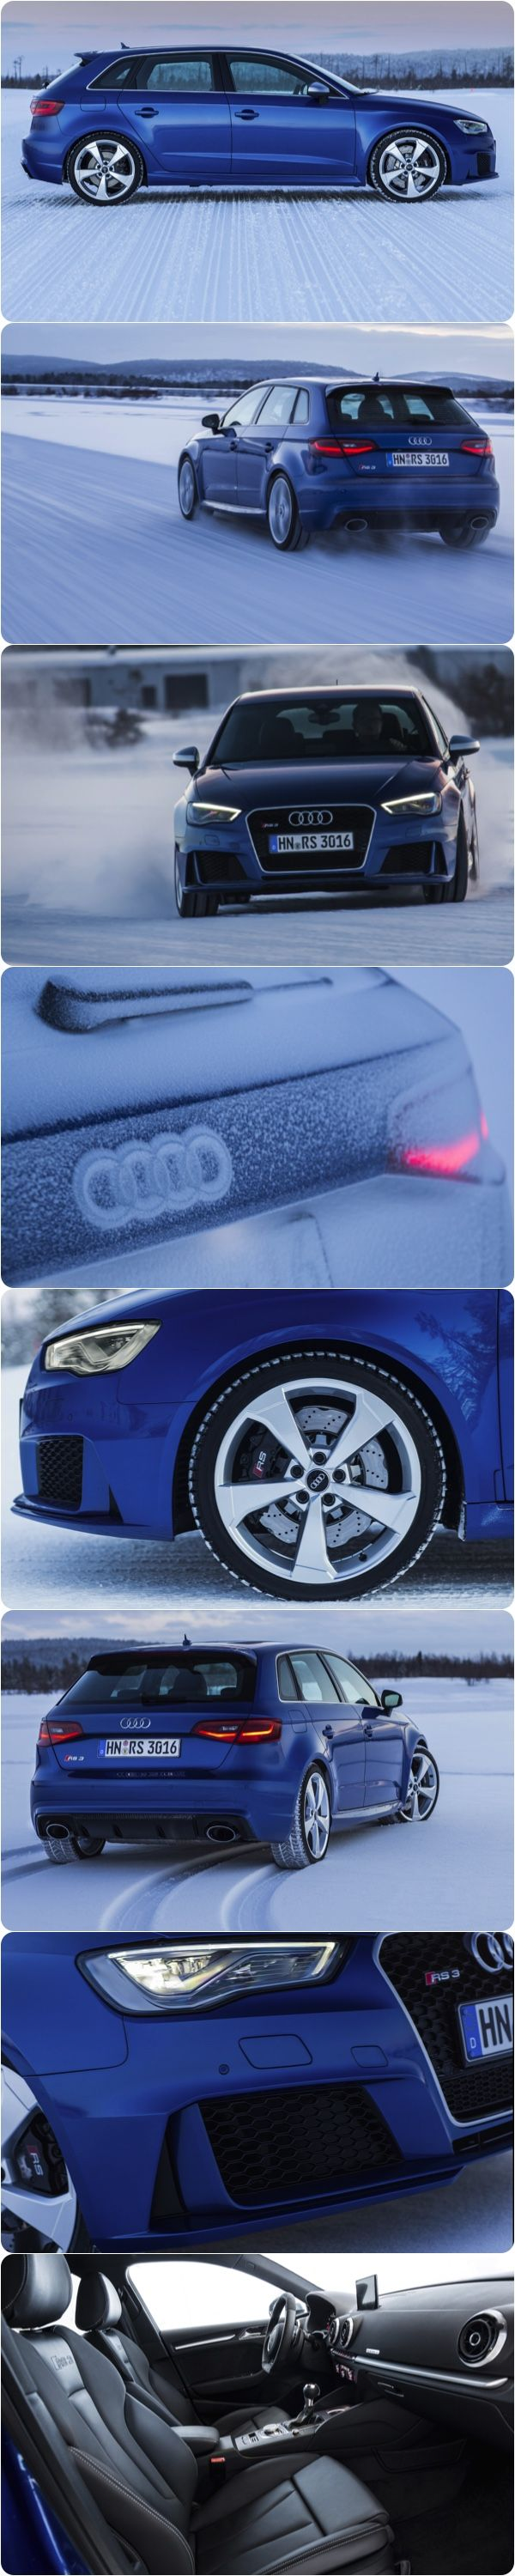 A Rather Cool New Audi - The RS 3 Sportback  New 367PS Audi RS 3 Sportback Ready to fly Audi have released the latest pictures of their Supercar Compact Hatchback – The New Audi RS 3 Sportback - Click to Read More  #AUDI #Sportcars #RS #Newcars